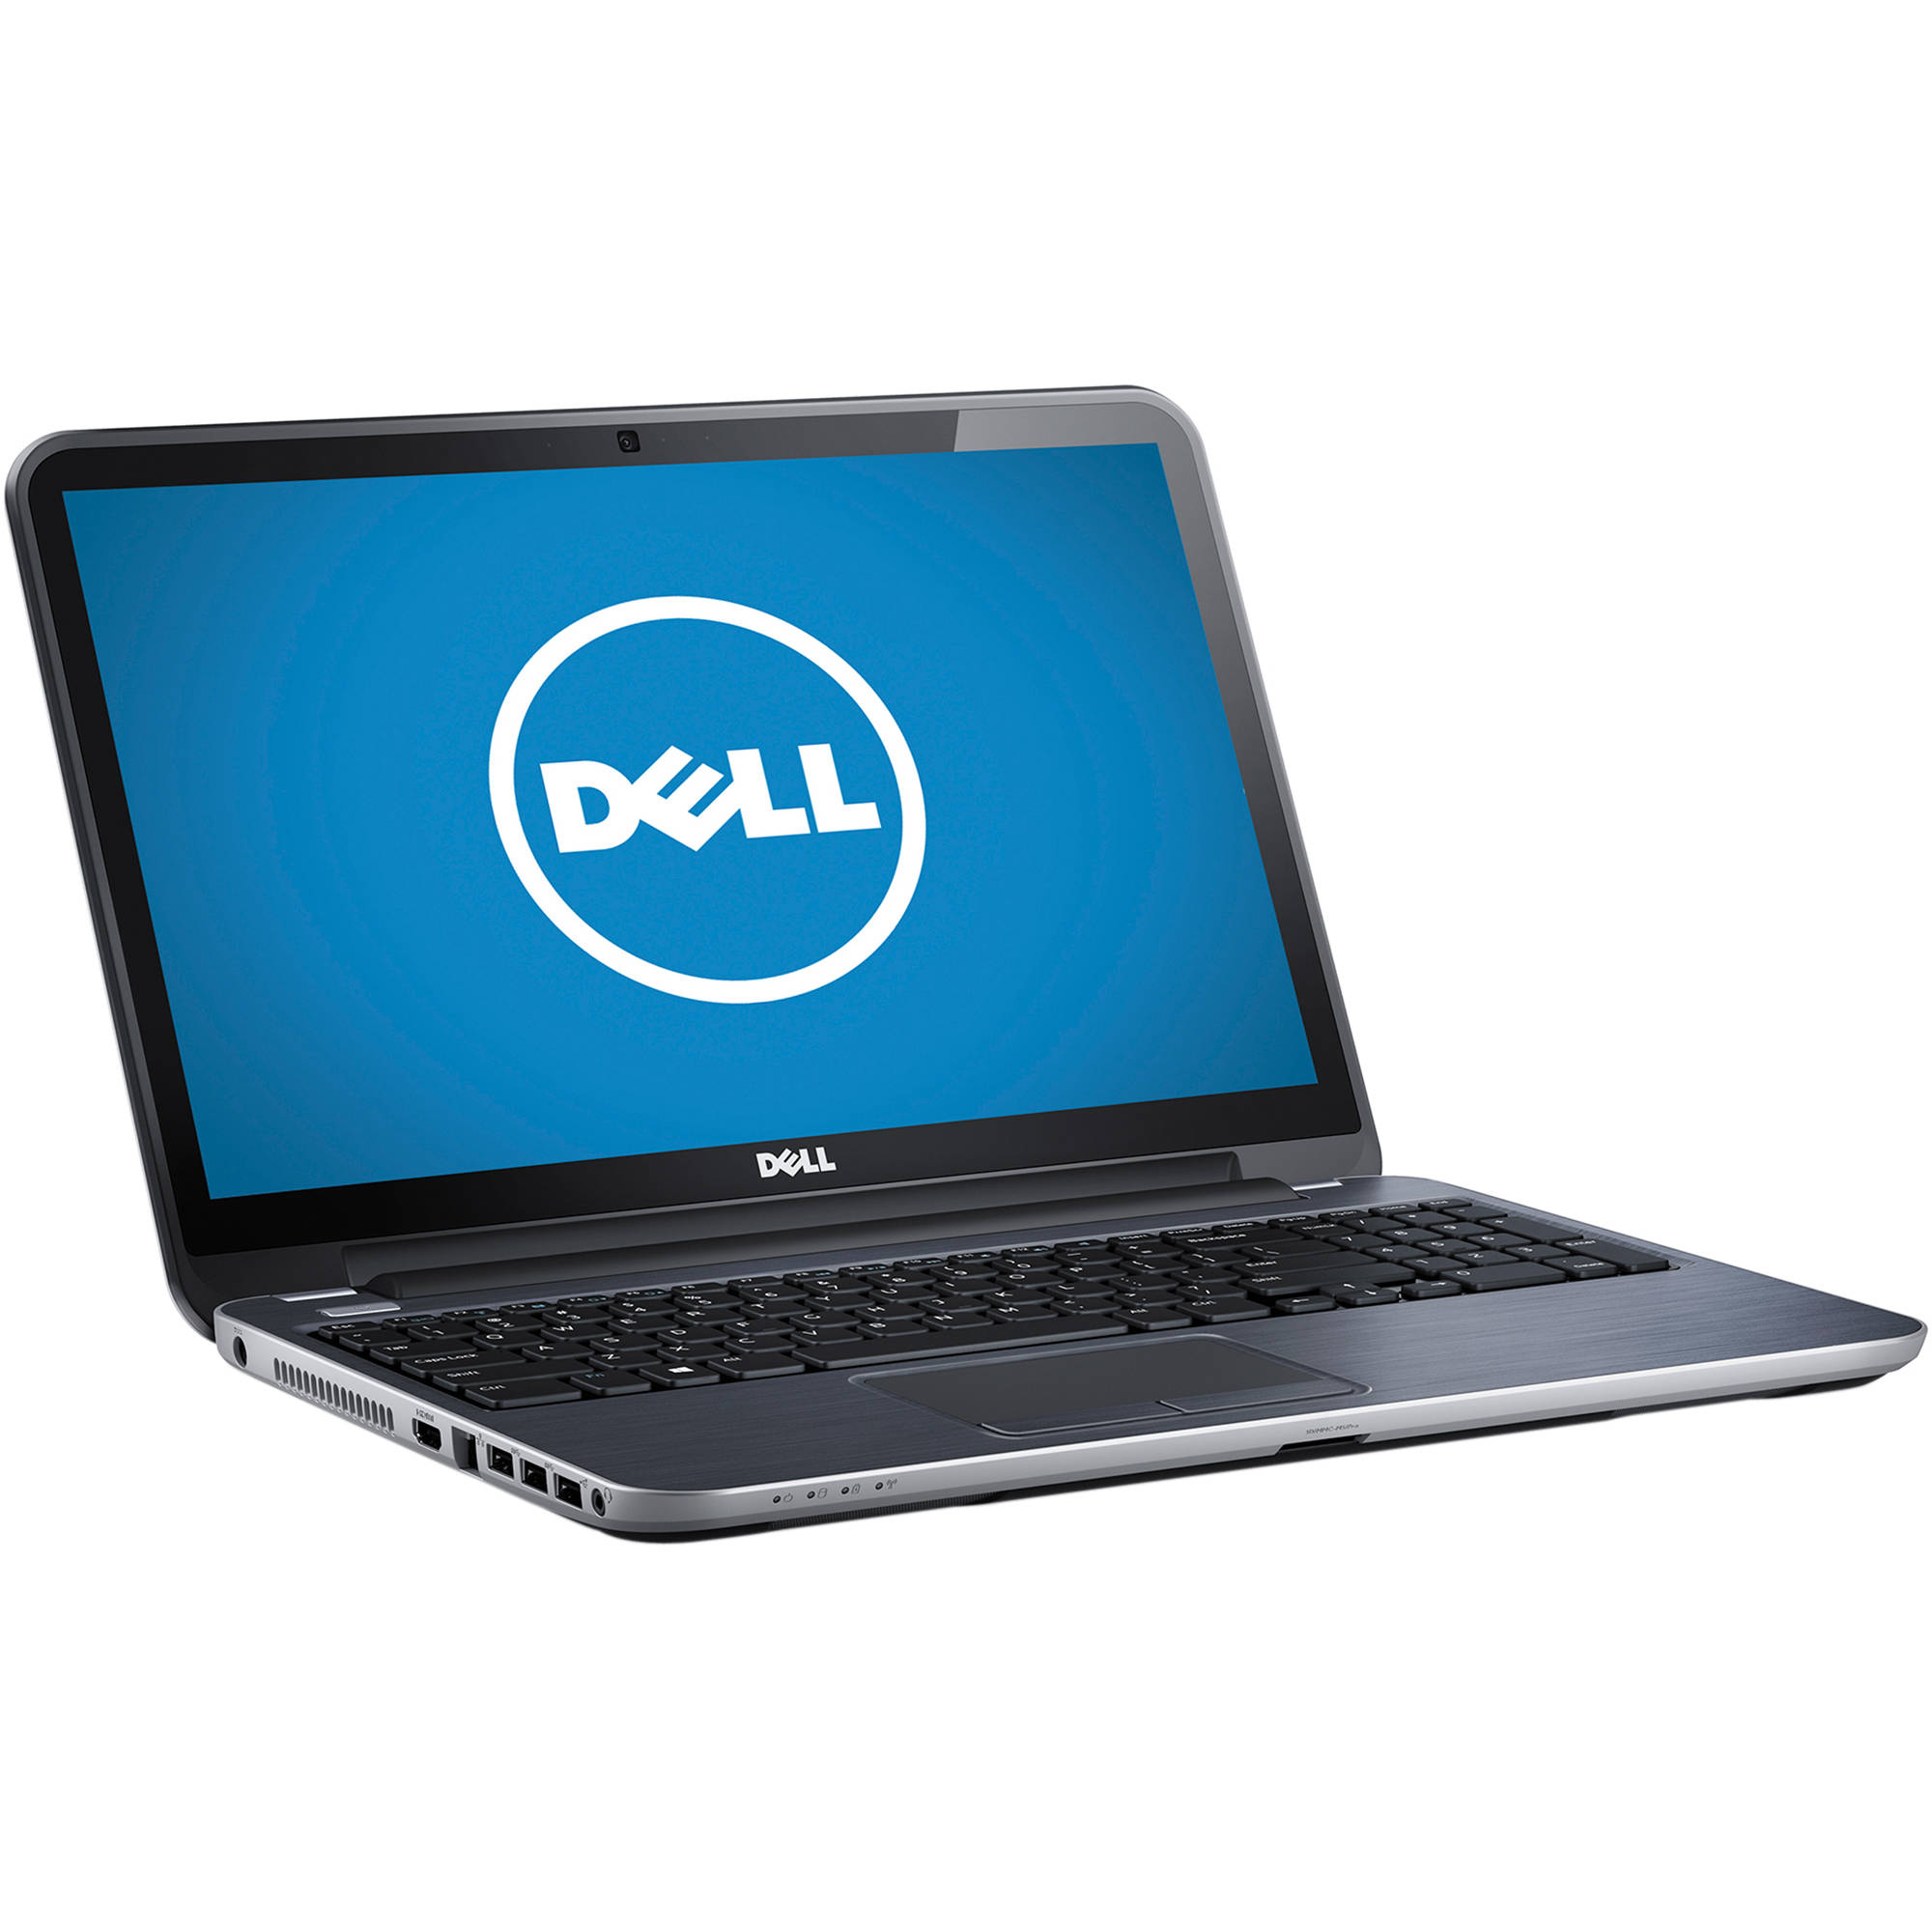 Dell inspiron 15r laptop coupon codes